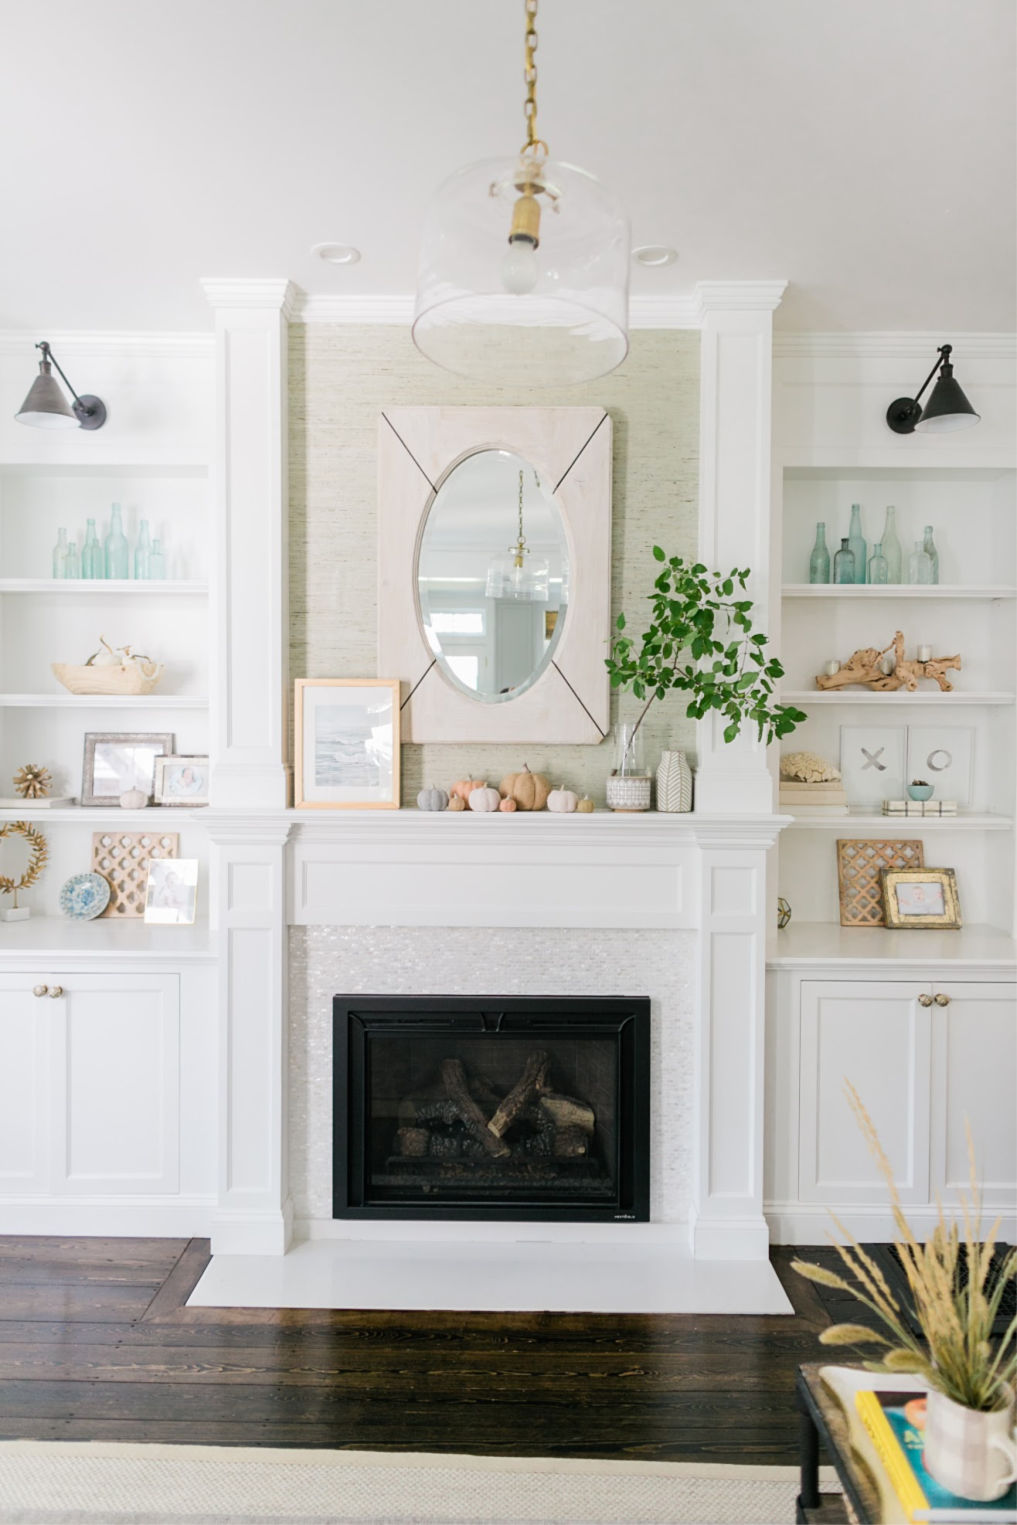 Love this fireplace with white stone tile surround and built in bookshelves kellyelko.com #mantel #manteldecor #fireplace #farmhousestyle